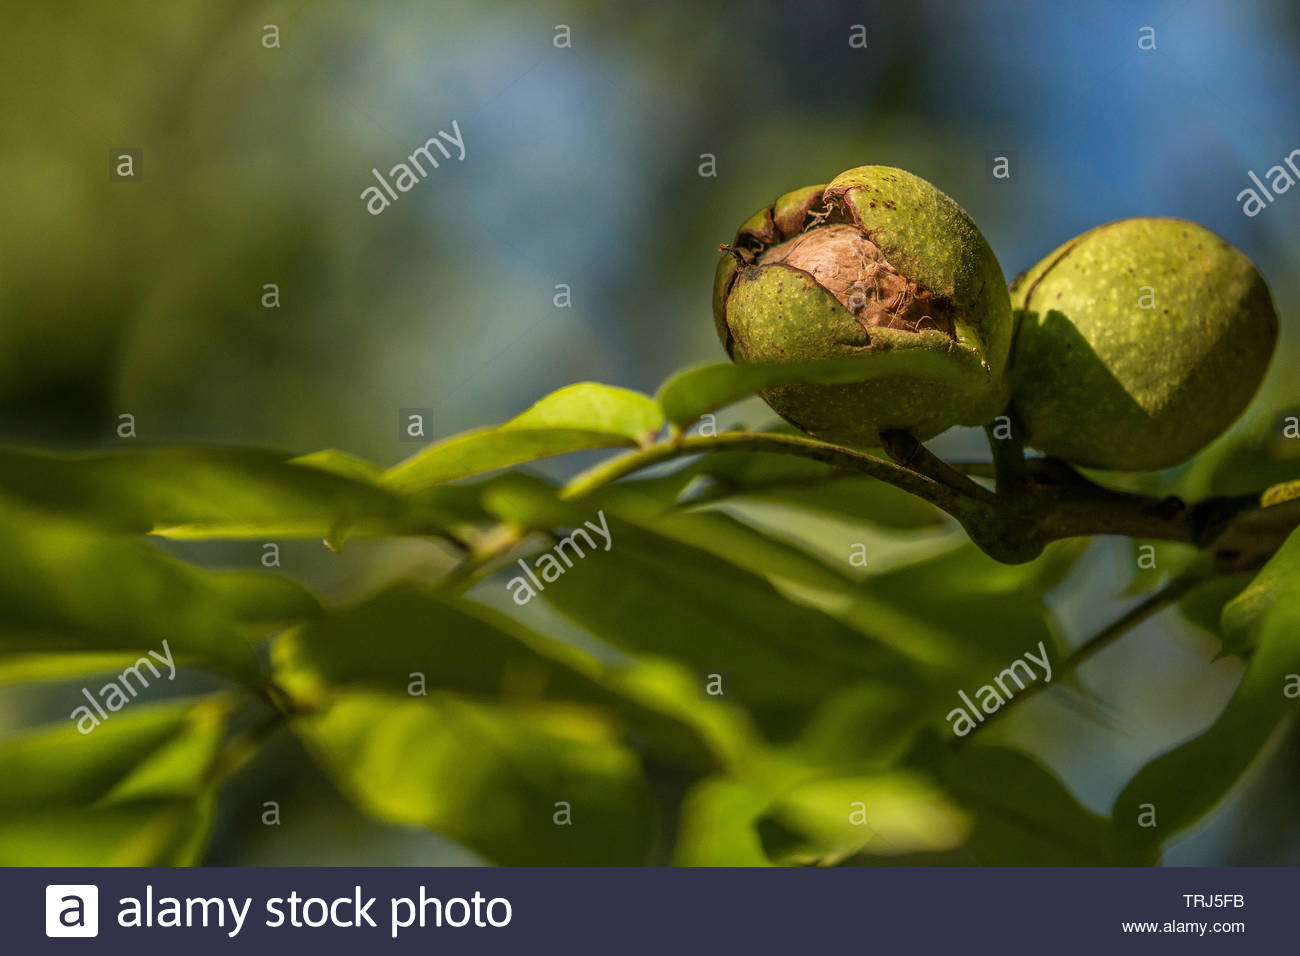 walnut-shell-inside-its-green-husk-TRJ5F